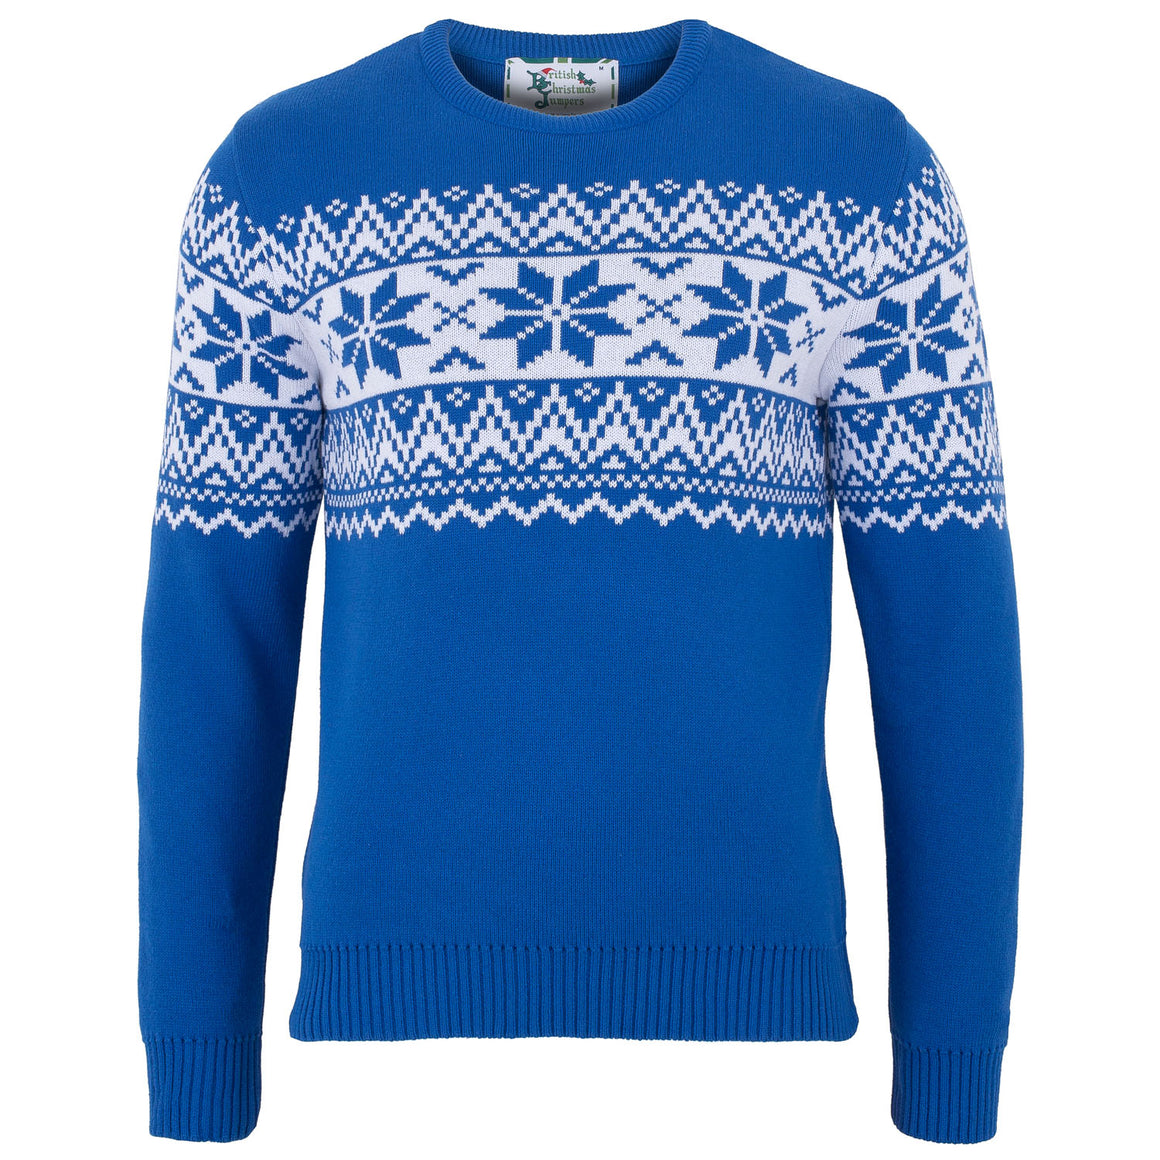 The Nordic Fairisle Blue Mens Eco Christmas Jumper